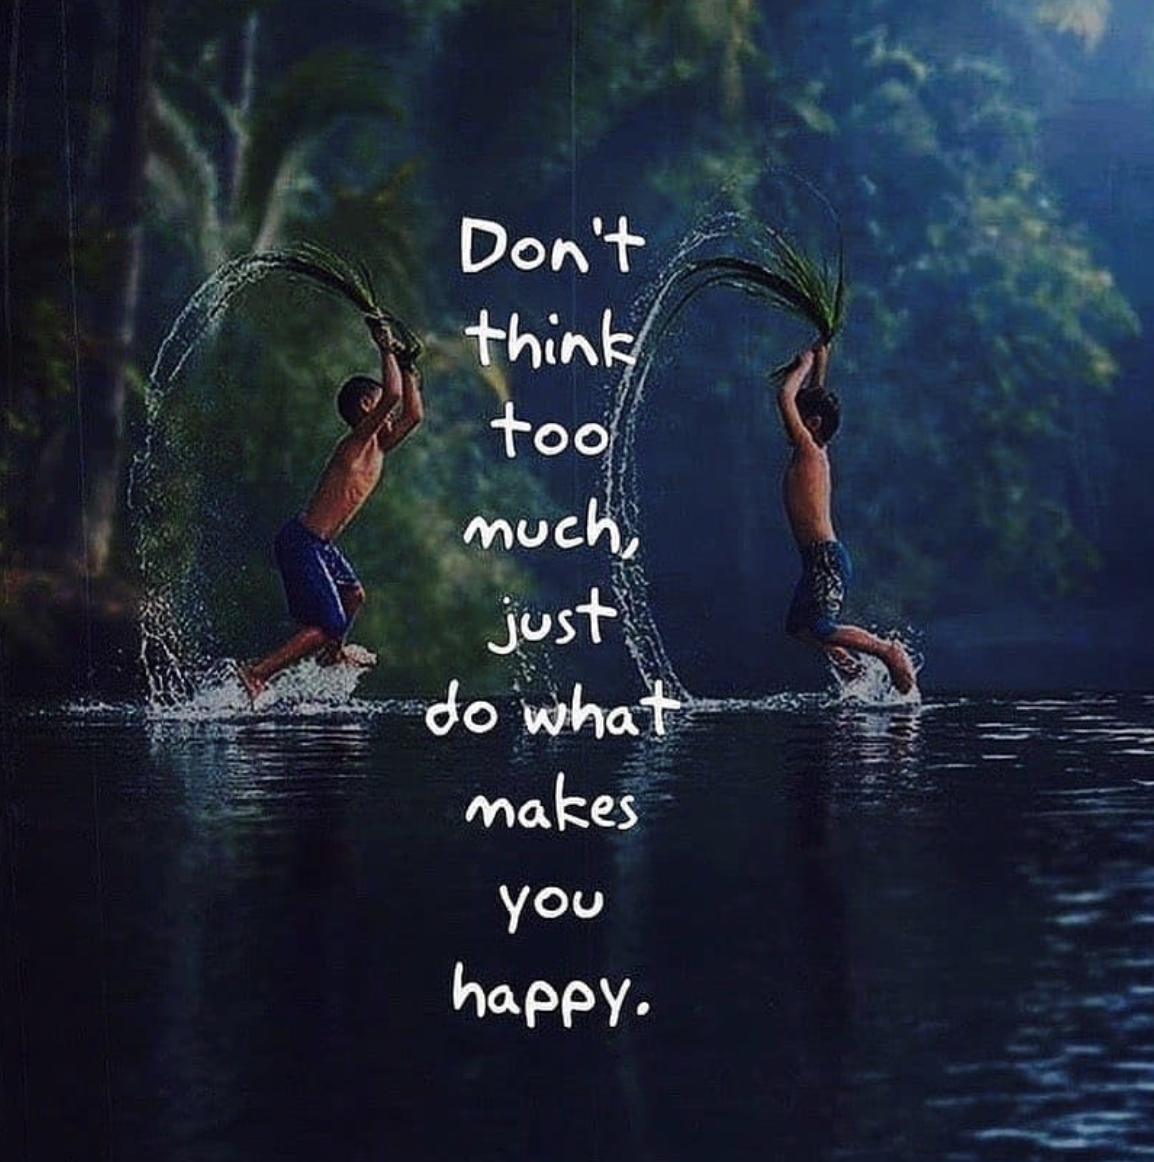 [Image] Don't think too much, just do what makes you happy.